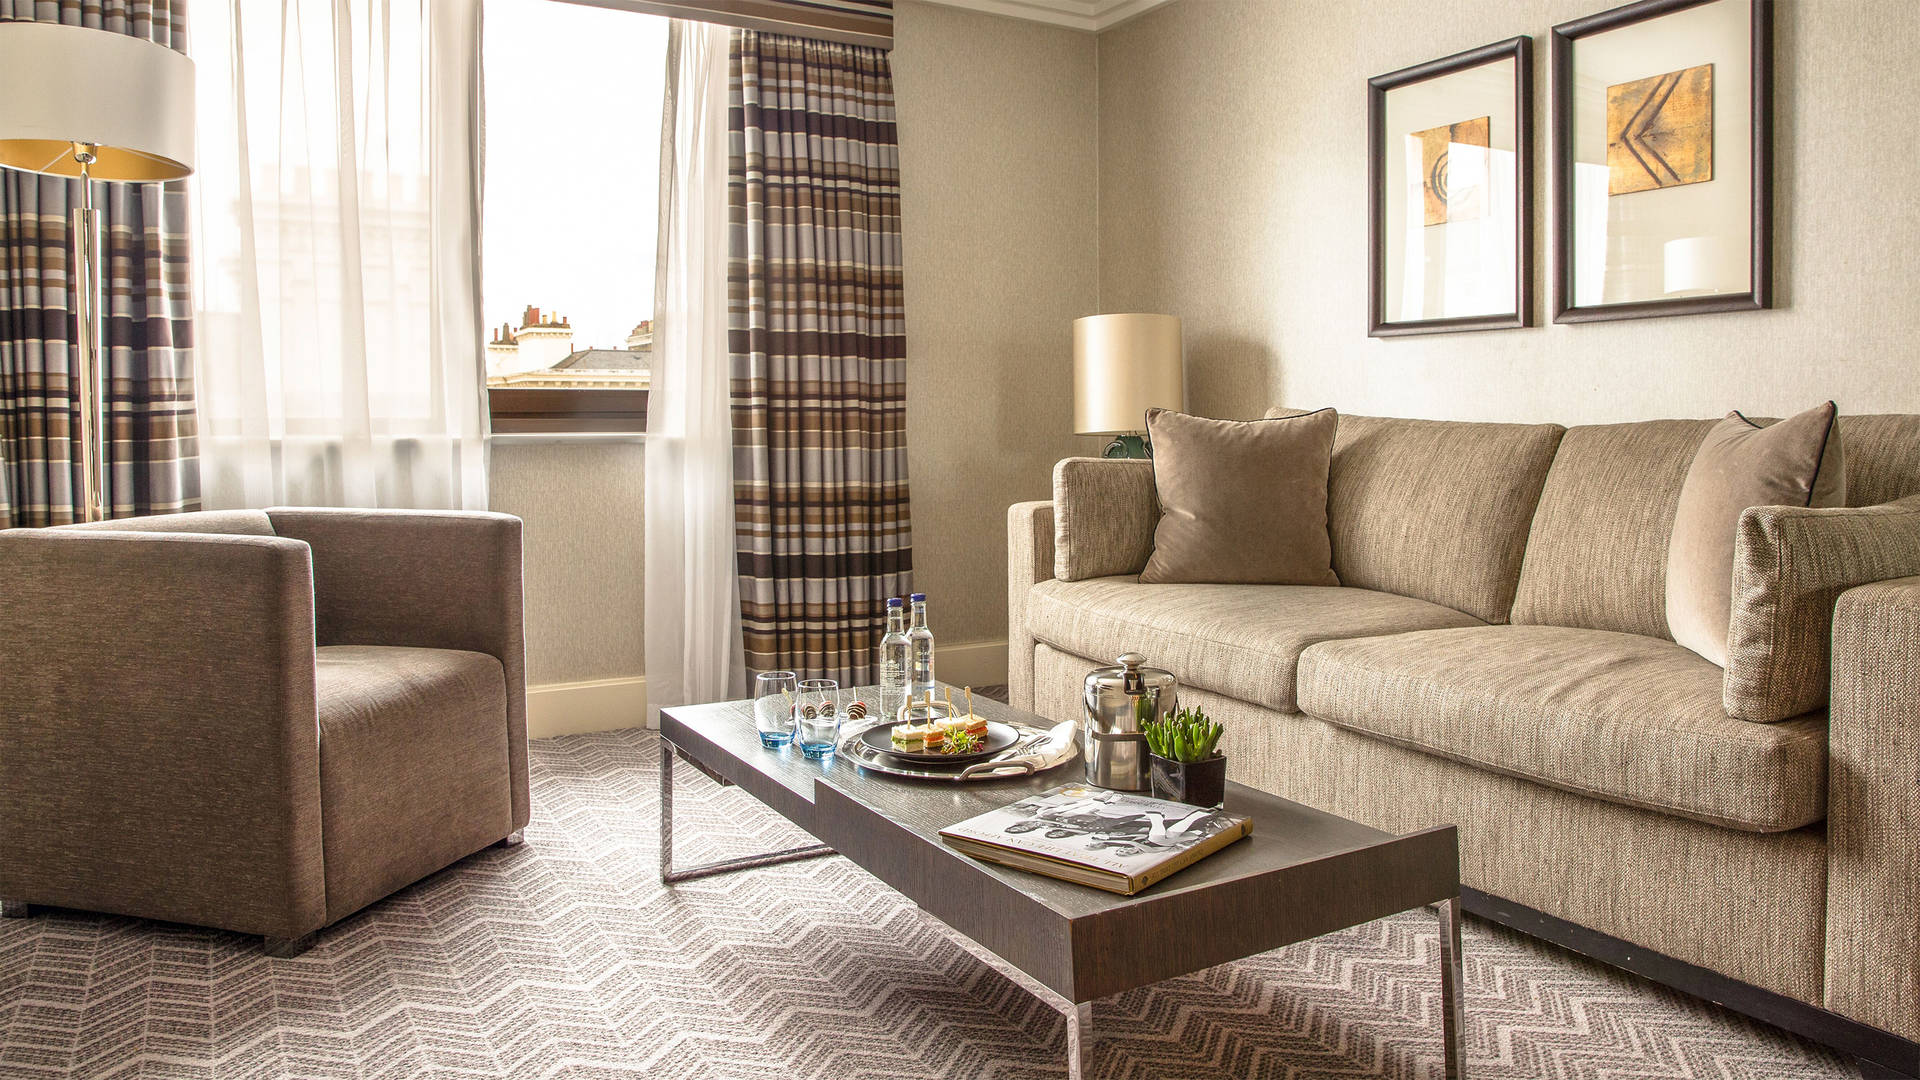 Executive Suite at Jumeirah Lowndes Hotel